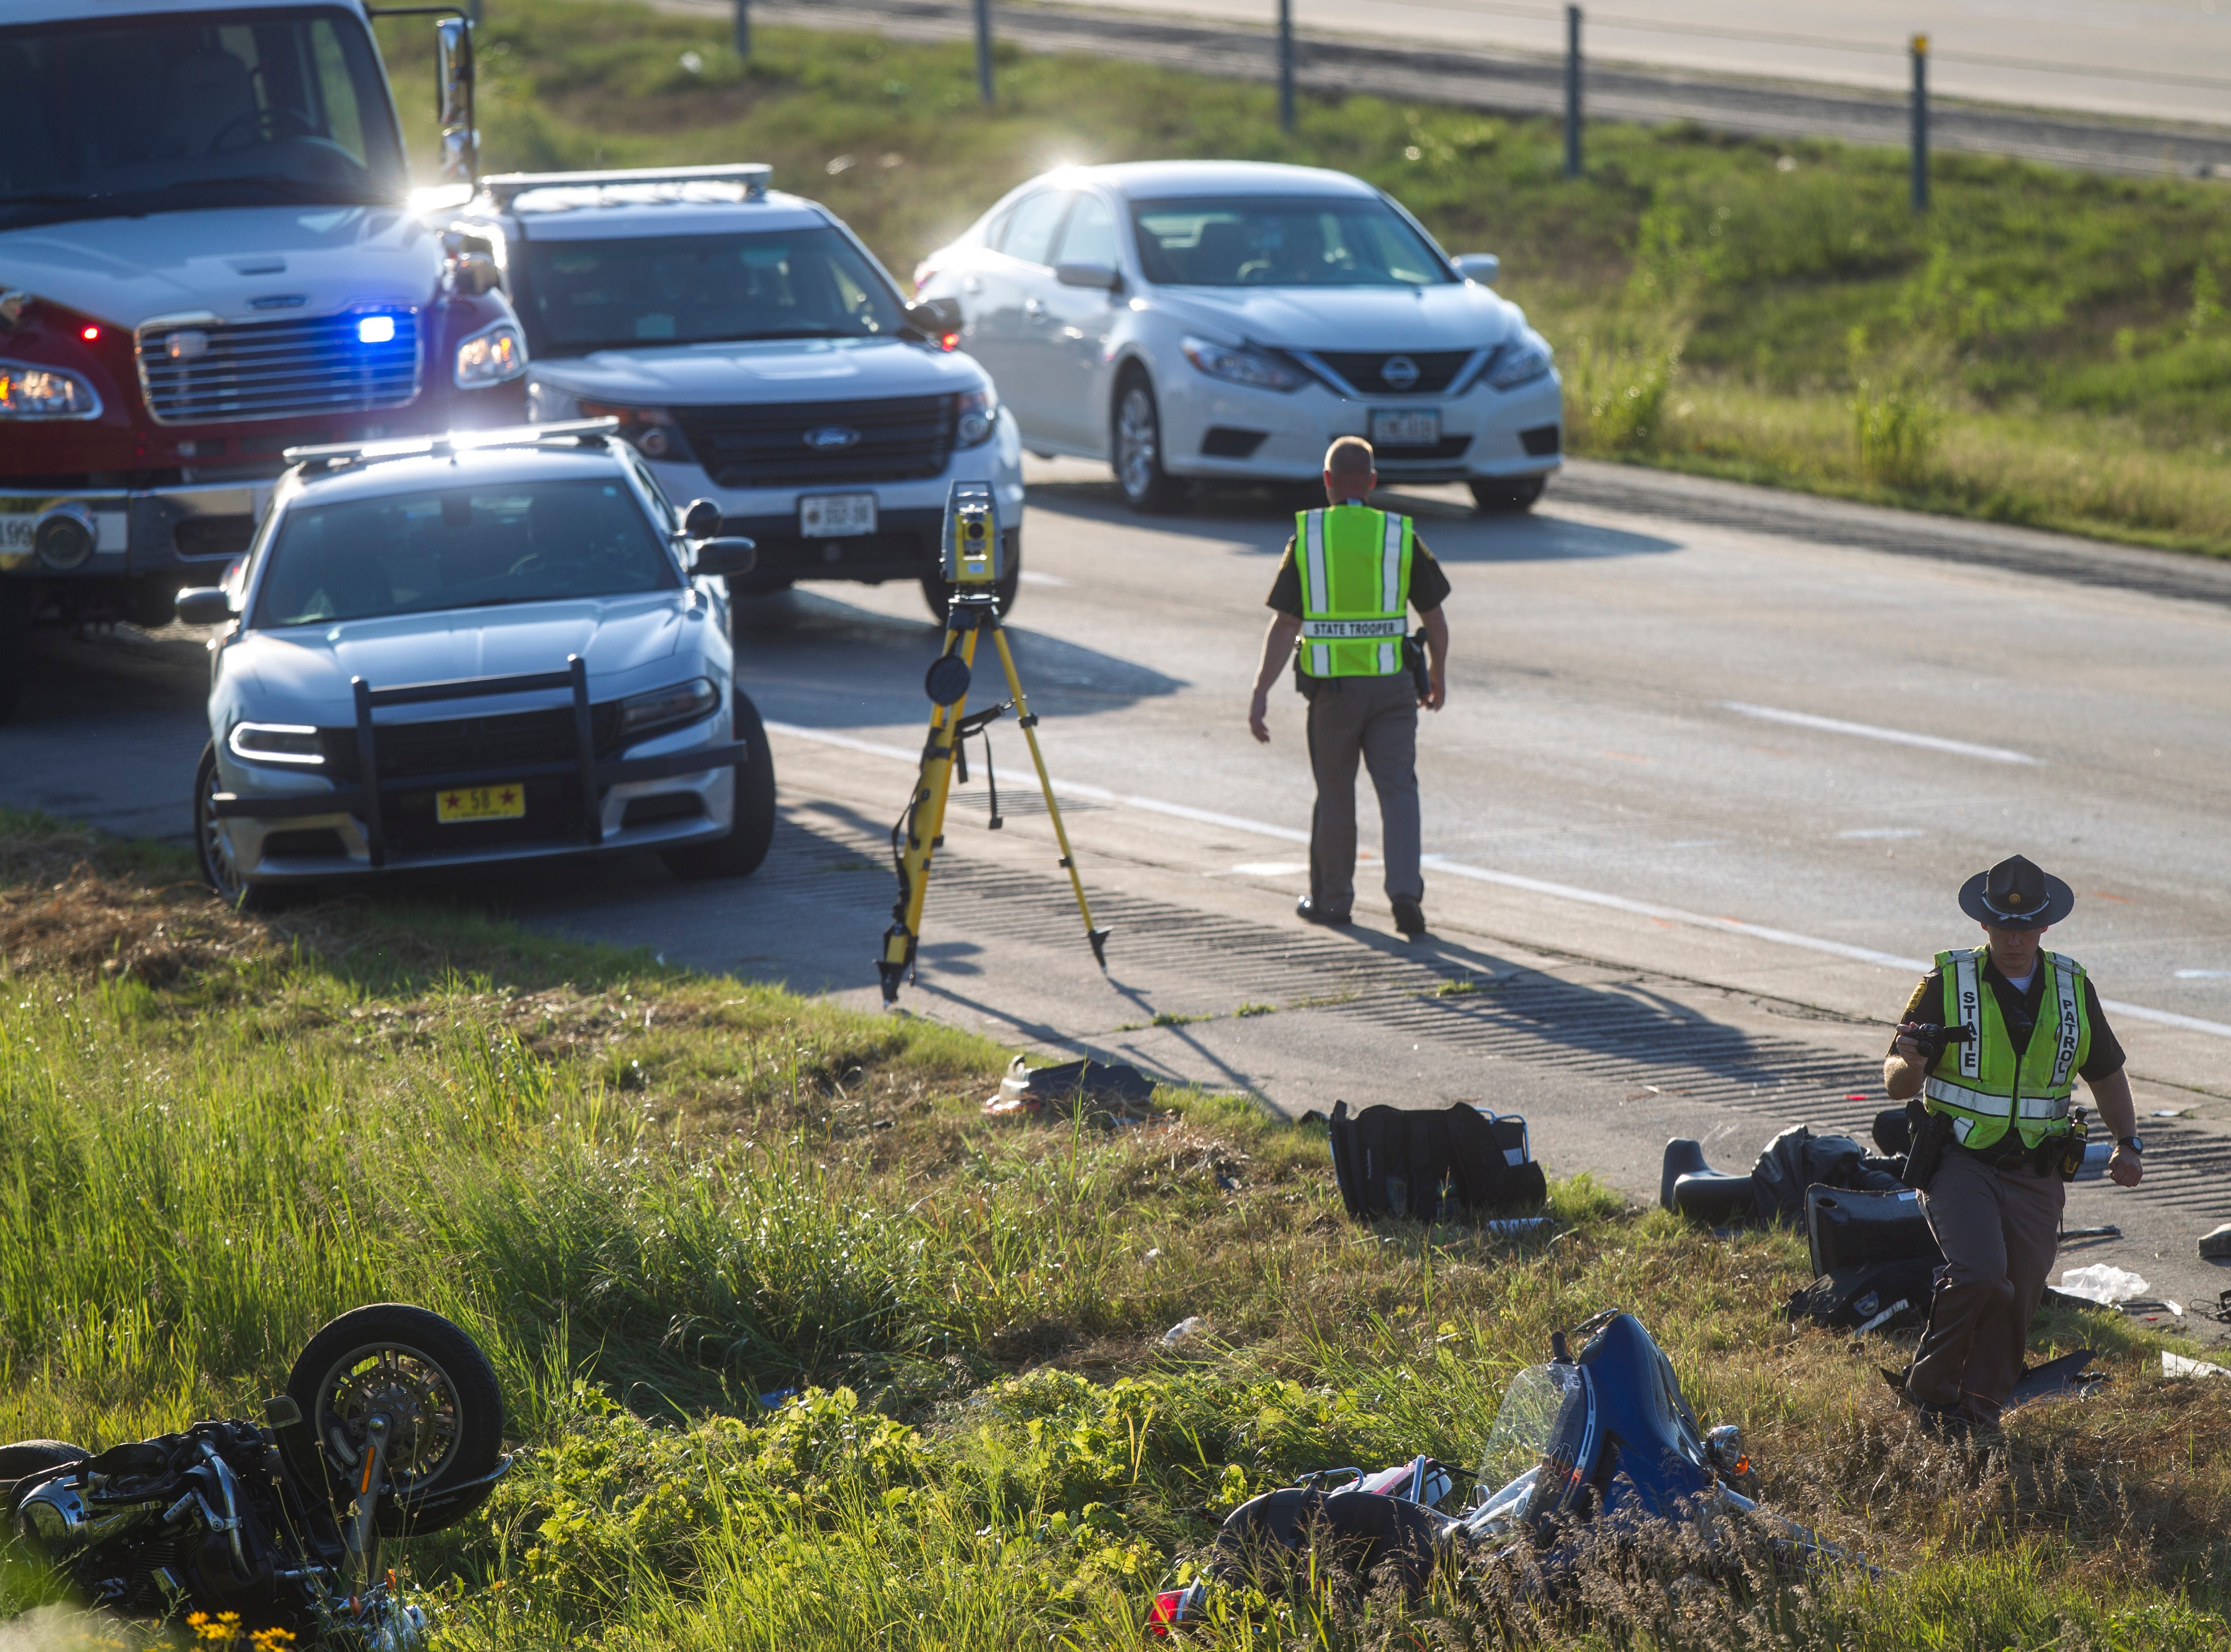 Emergency crews respond to a crash between a motorcycle and a semi on Wednesday, Aug. 8, 2018, along Interstate 80 before the X16 overpass, in Johnson County, Iowa.